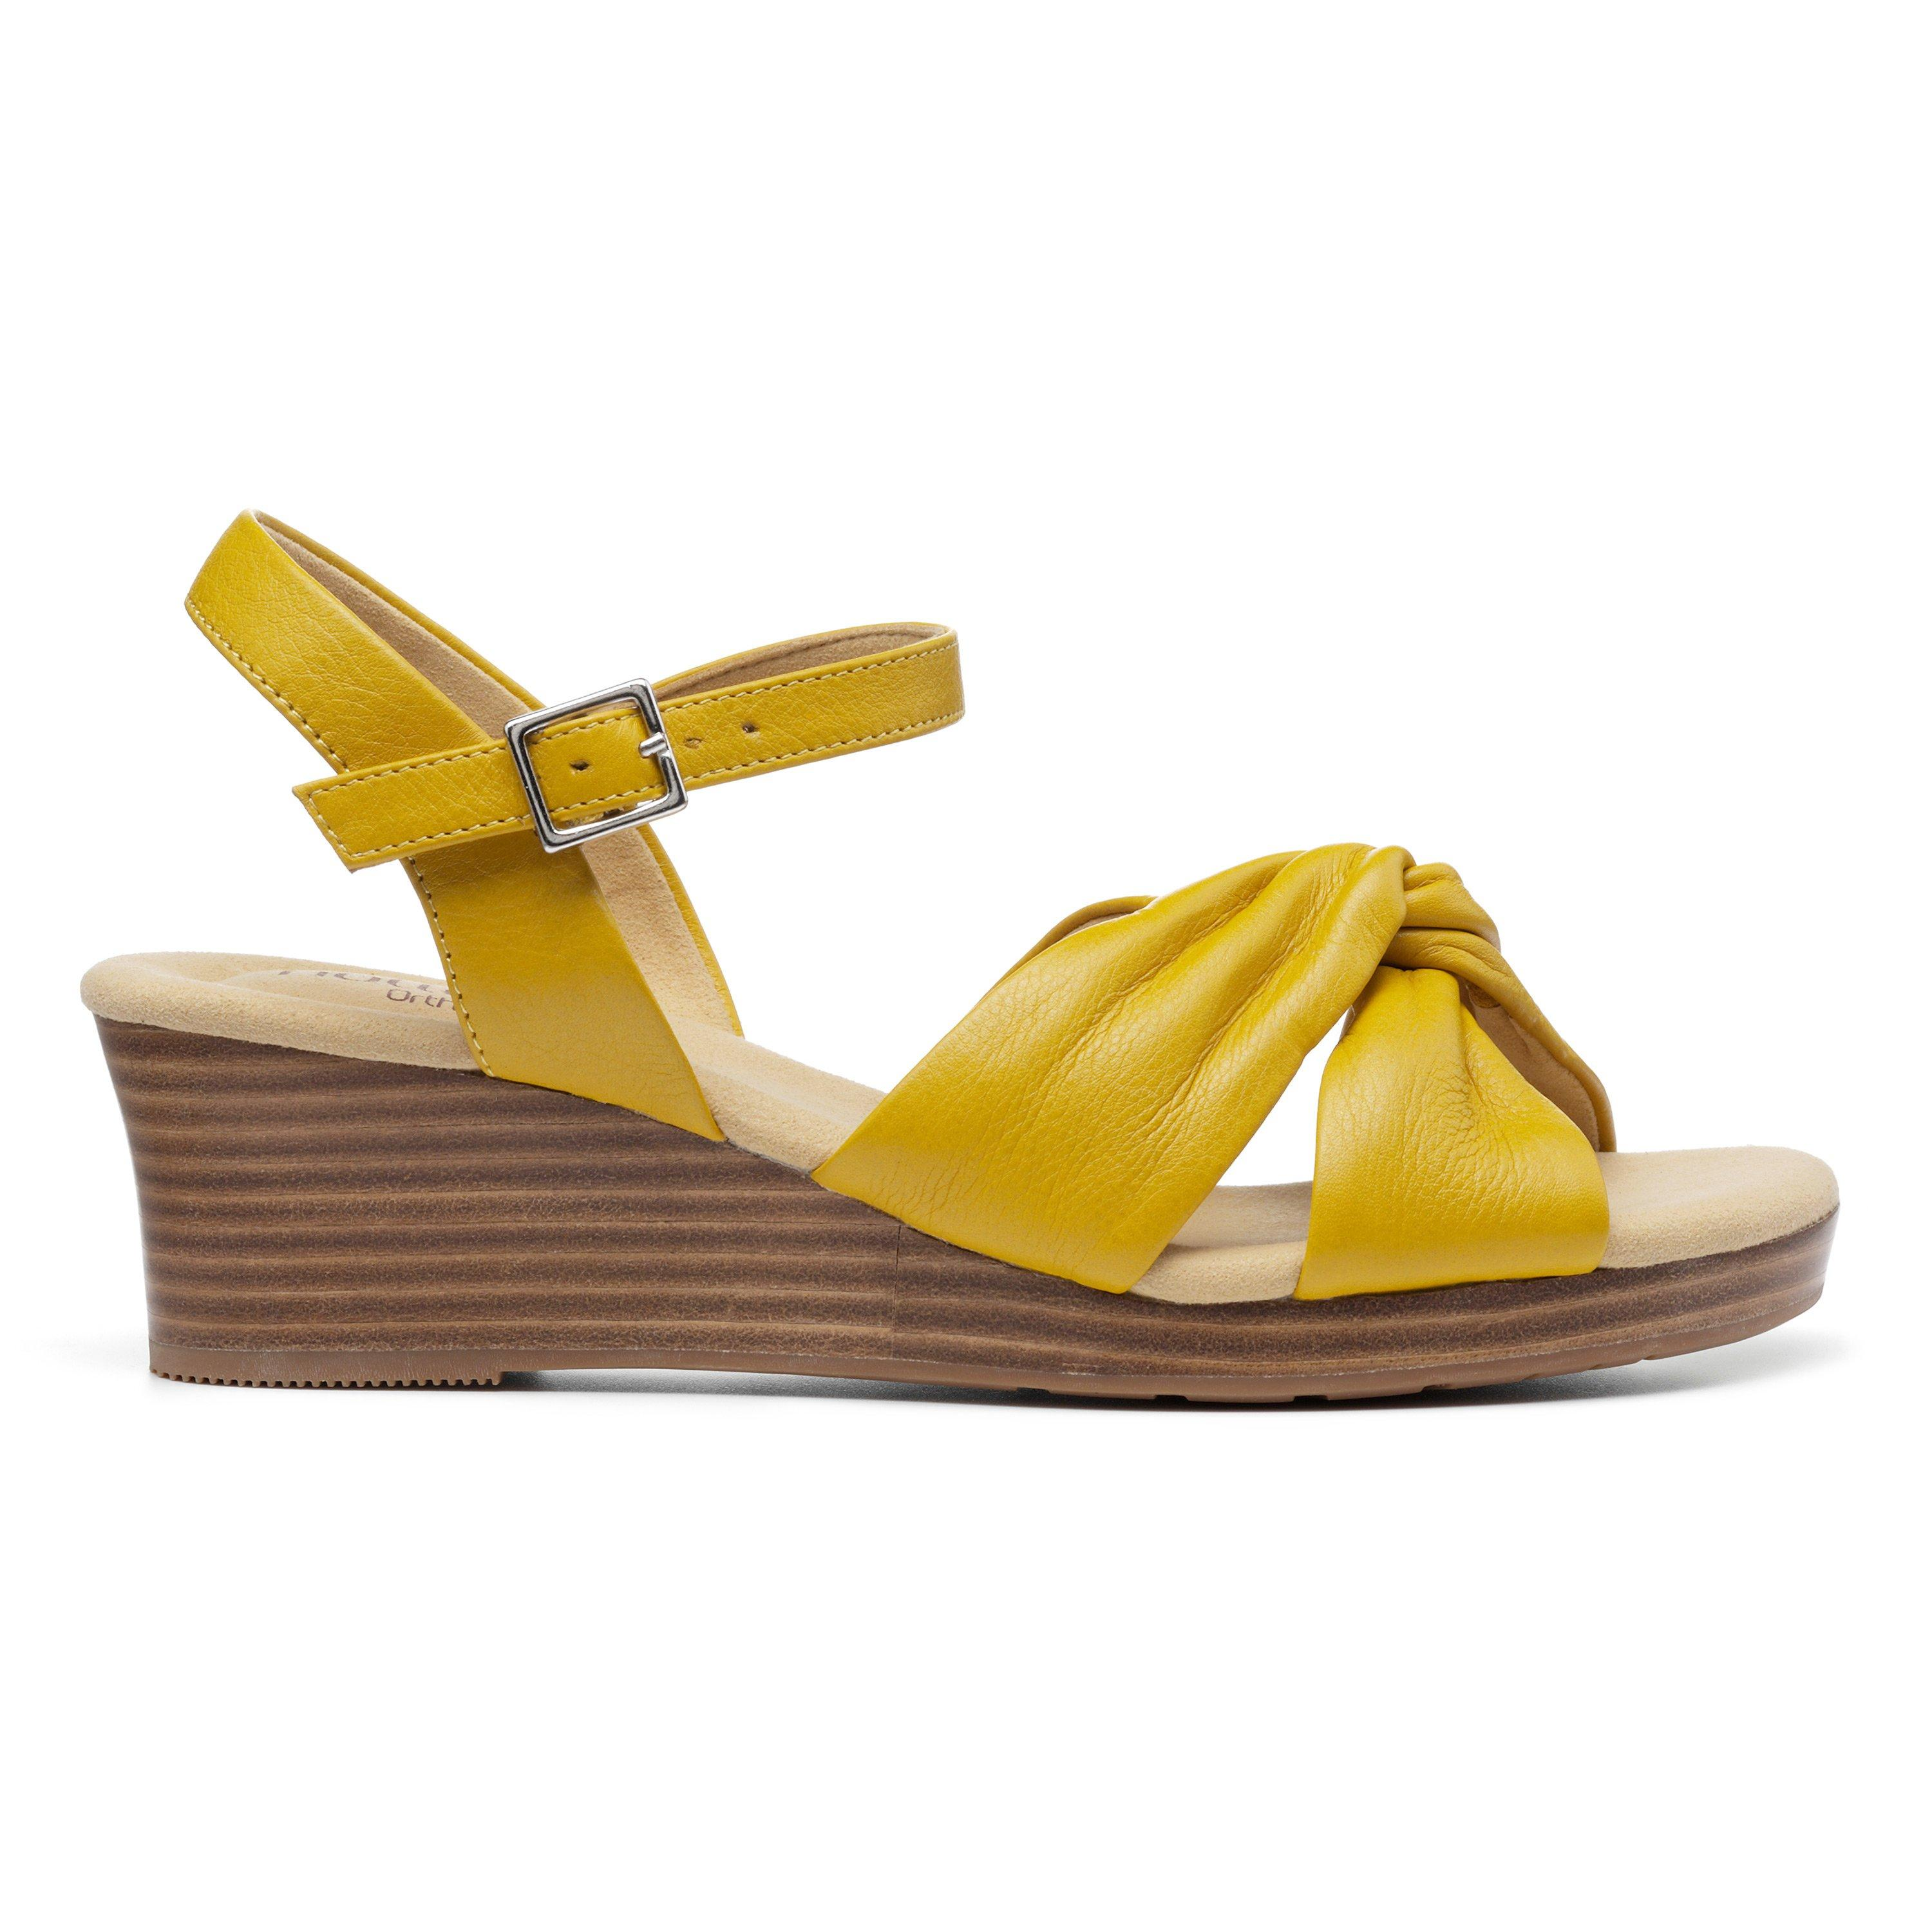 70s Outfits – 70s Style Ideas for Women Java Sandals - Yellow Standard Fit 11 $125.00 AT vintagedancer.com